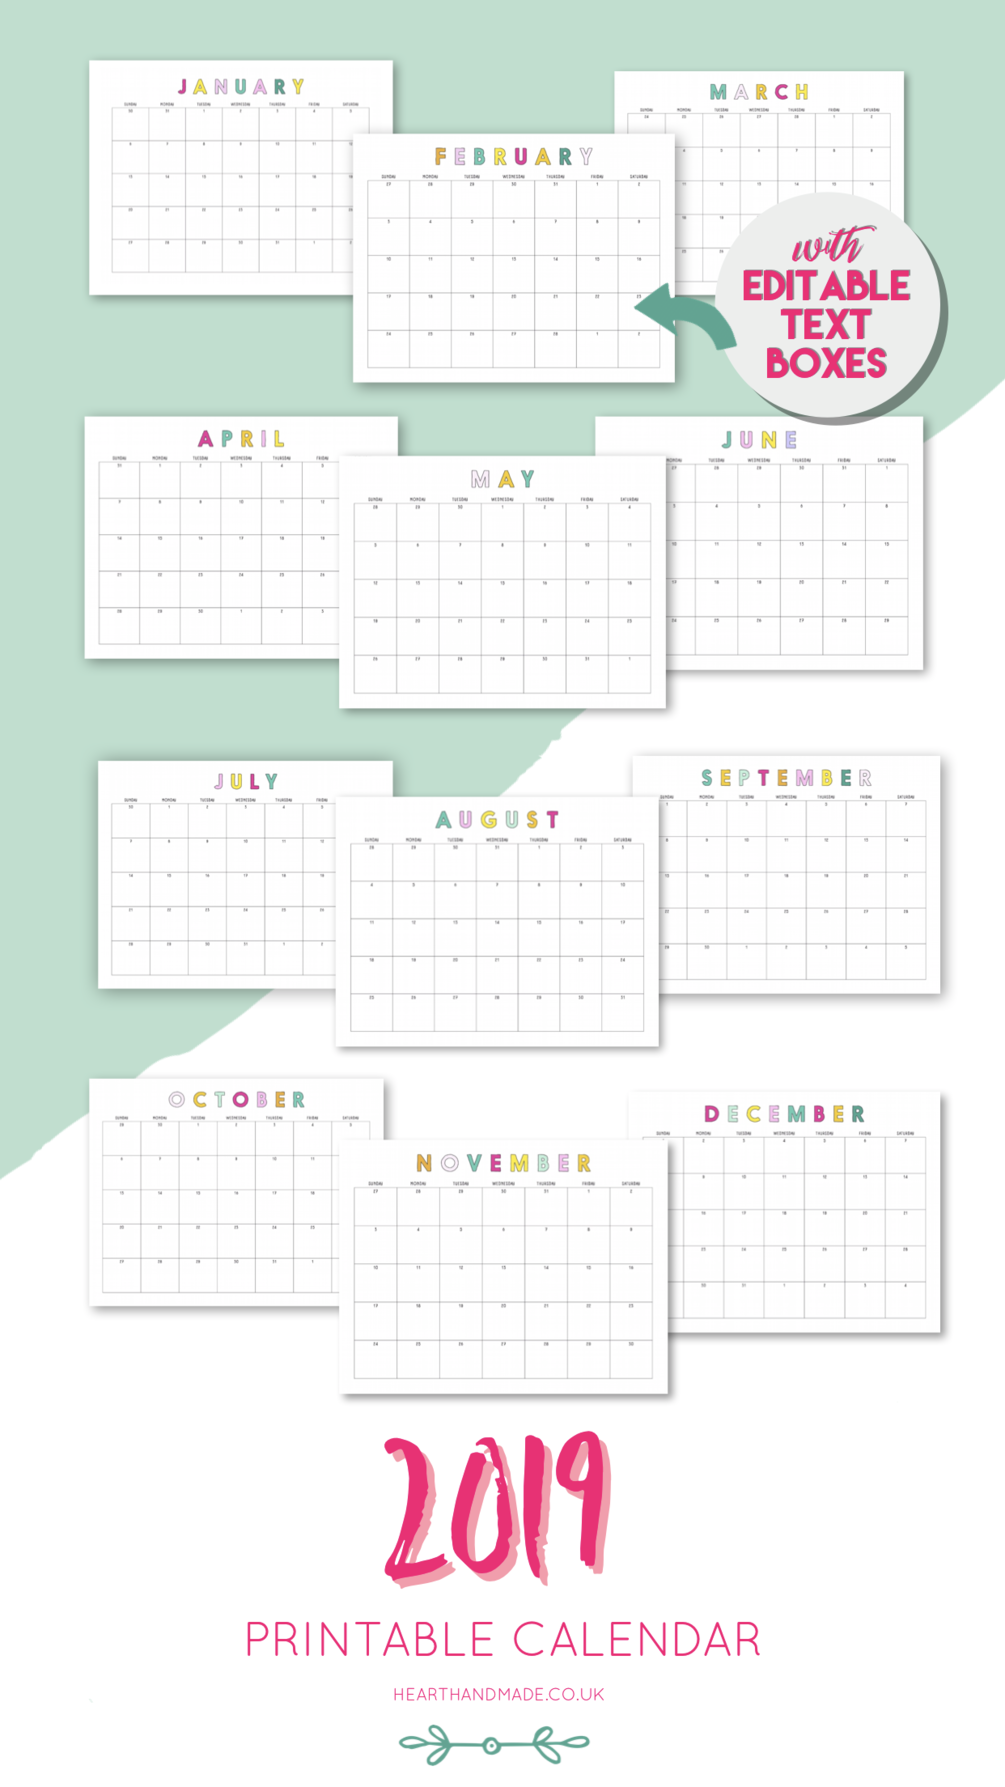 Customizable 2019 Full Year Calendar In Landscape Format With Text Boxes In Each Month For You To Add Yo Planner Printables Free Printable Planner Free Planner